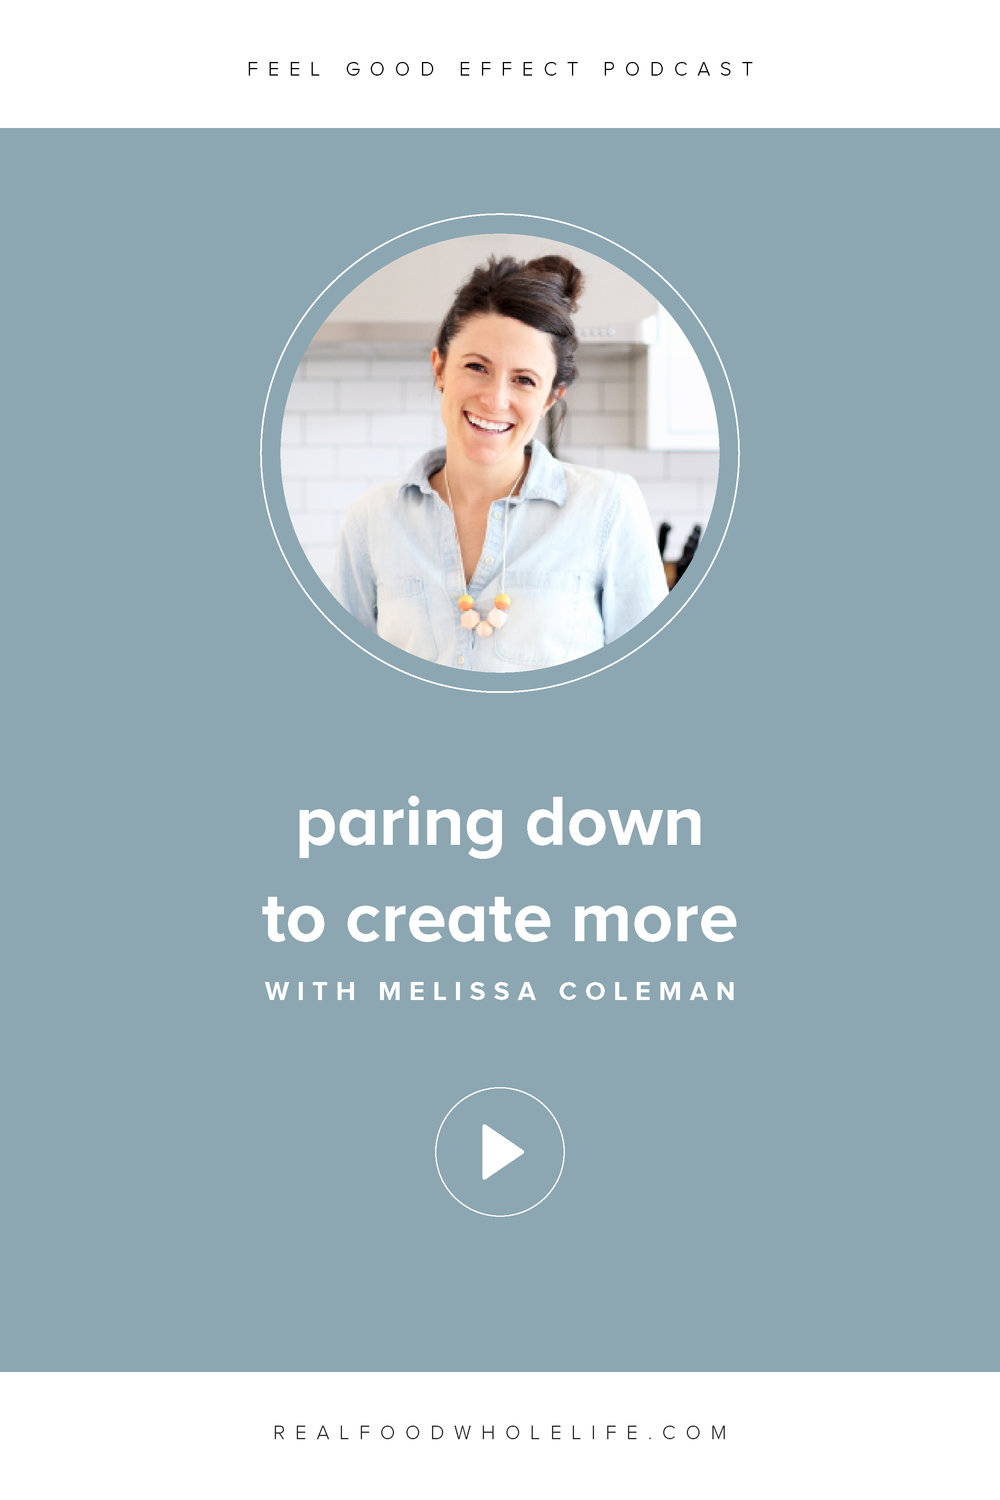 Paring Down to Create More, a conversation with The Faux Martha's Melissa Coleman on the Feel Good Effect Podcast. Listen for more on how to make a minimalist lifestyle work in real life. #realfoodwholelife #feelgoodeffectpodcast #personaldevelopment #selfcare #selfimprovement #podcast #wellnesspodcast #healthpodcast  #wellness #wellnesspodcast  #healthandwellness #healthandwellnesspodcast